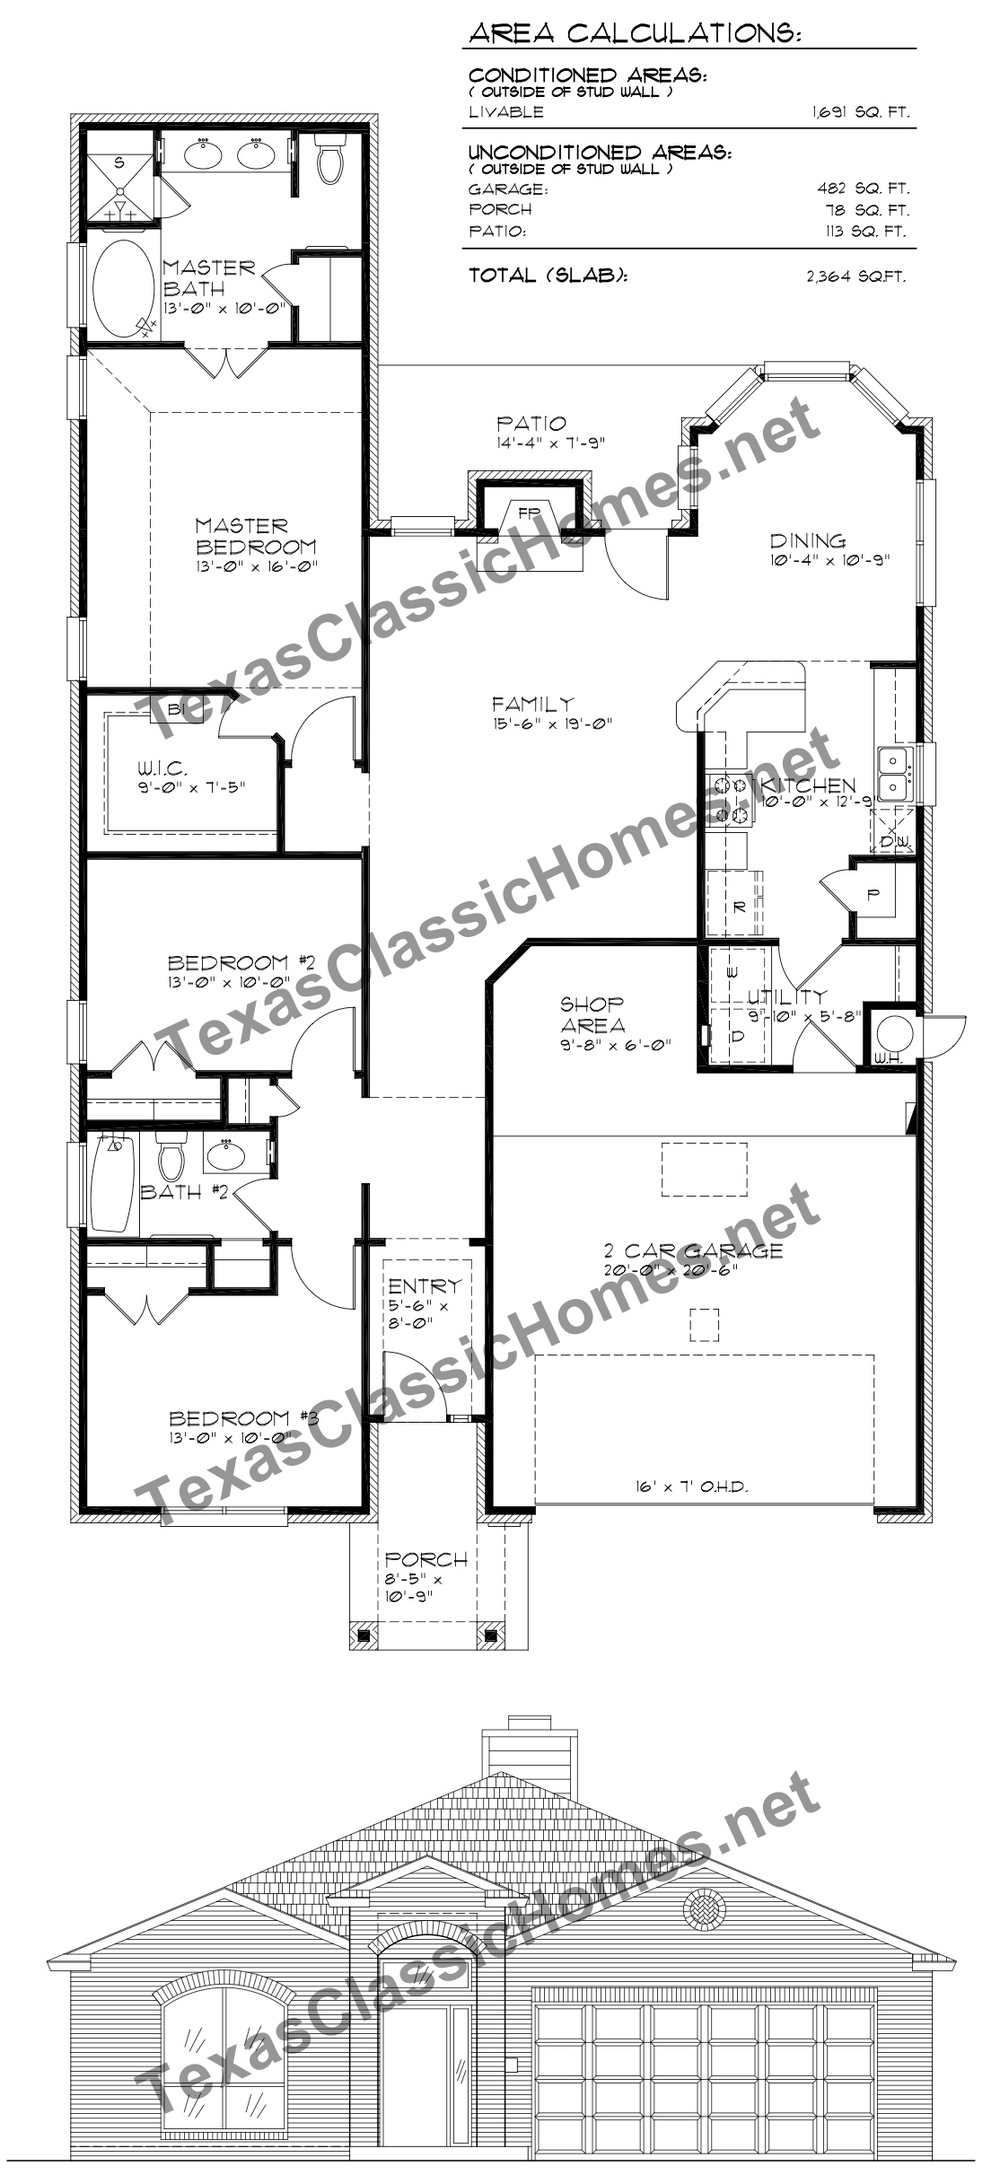 This plan includes lots of windows and a large master suite area.